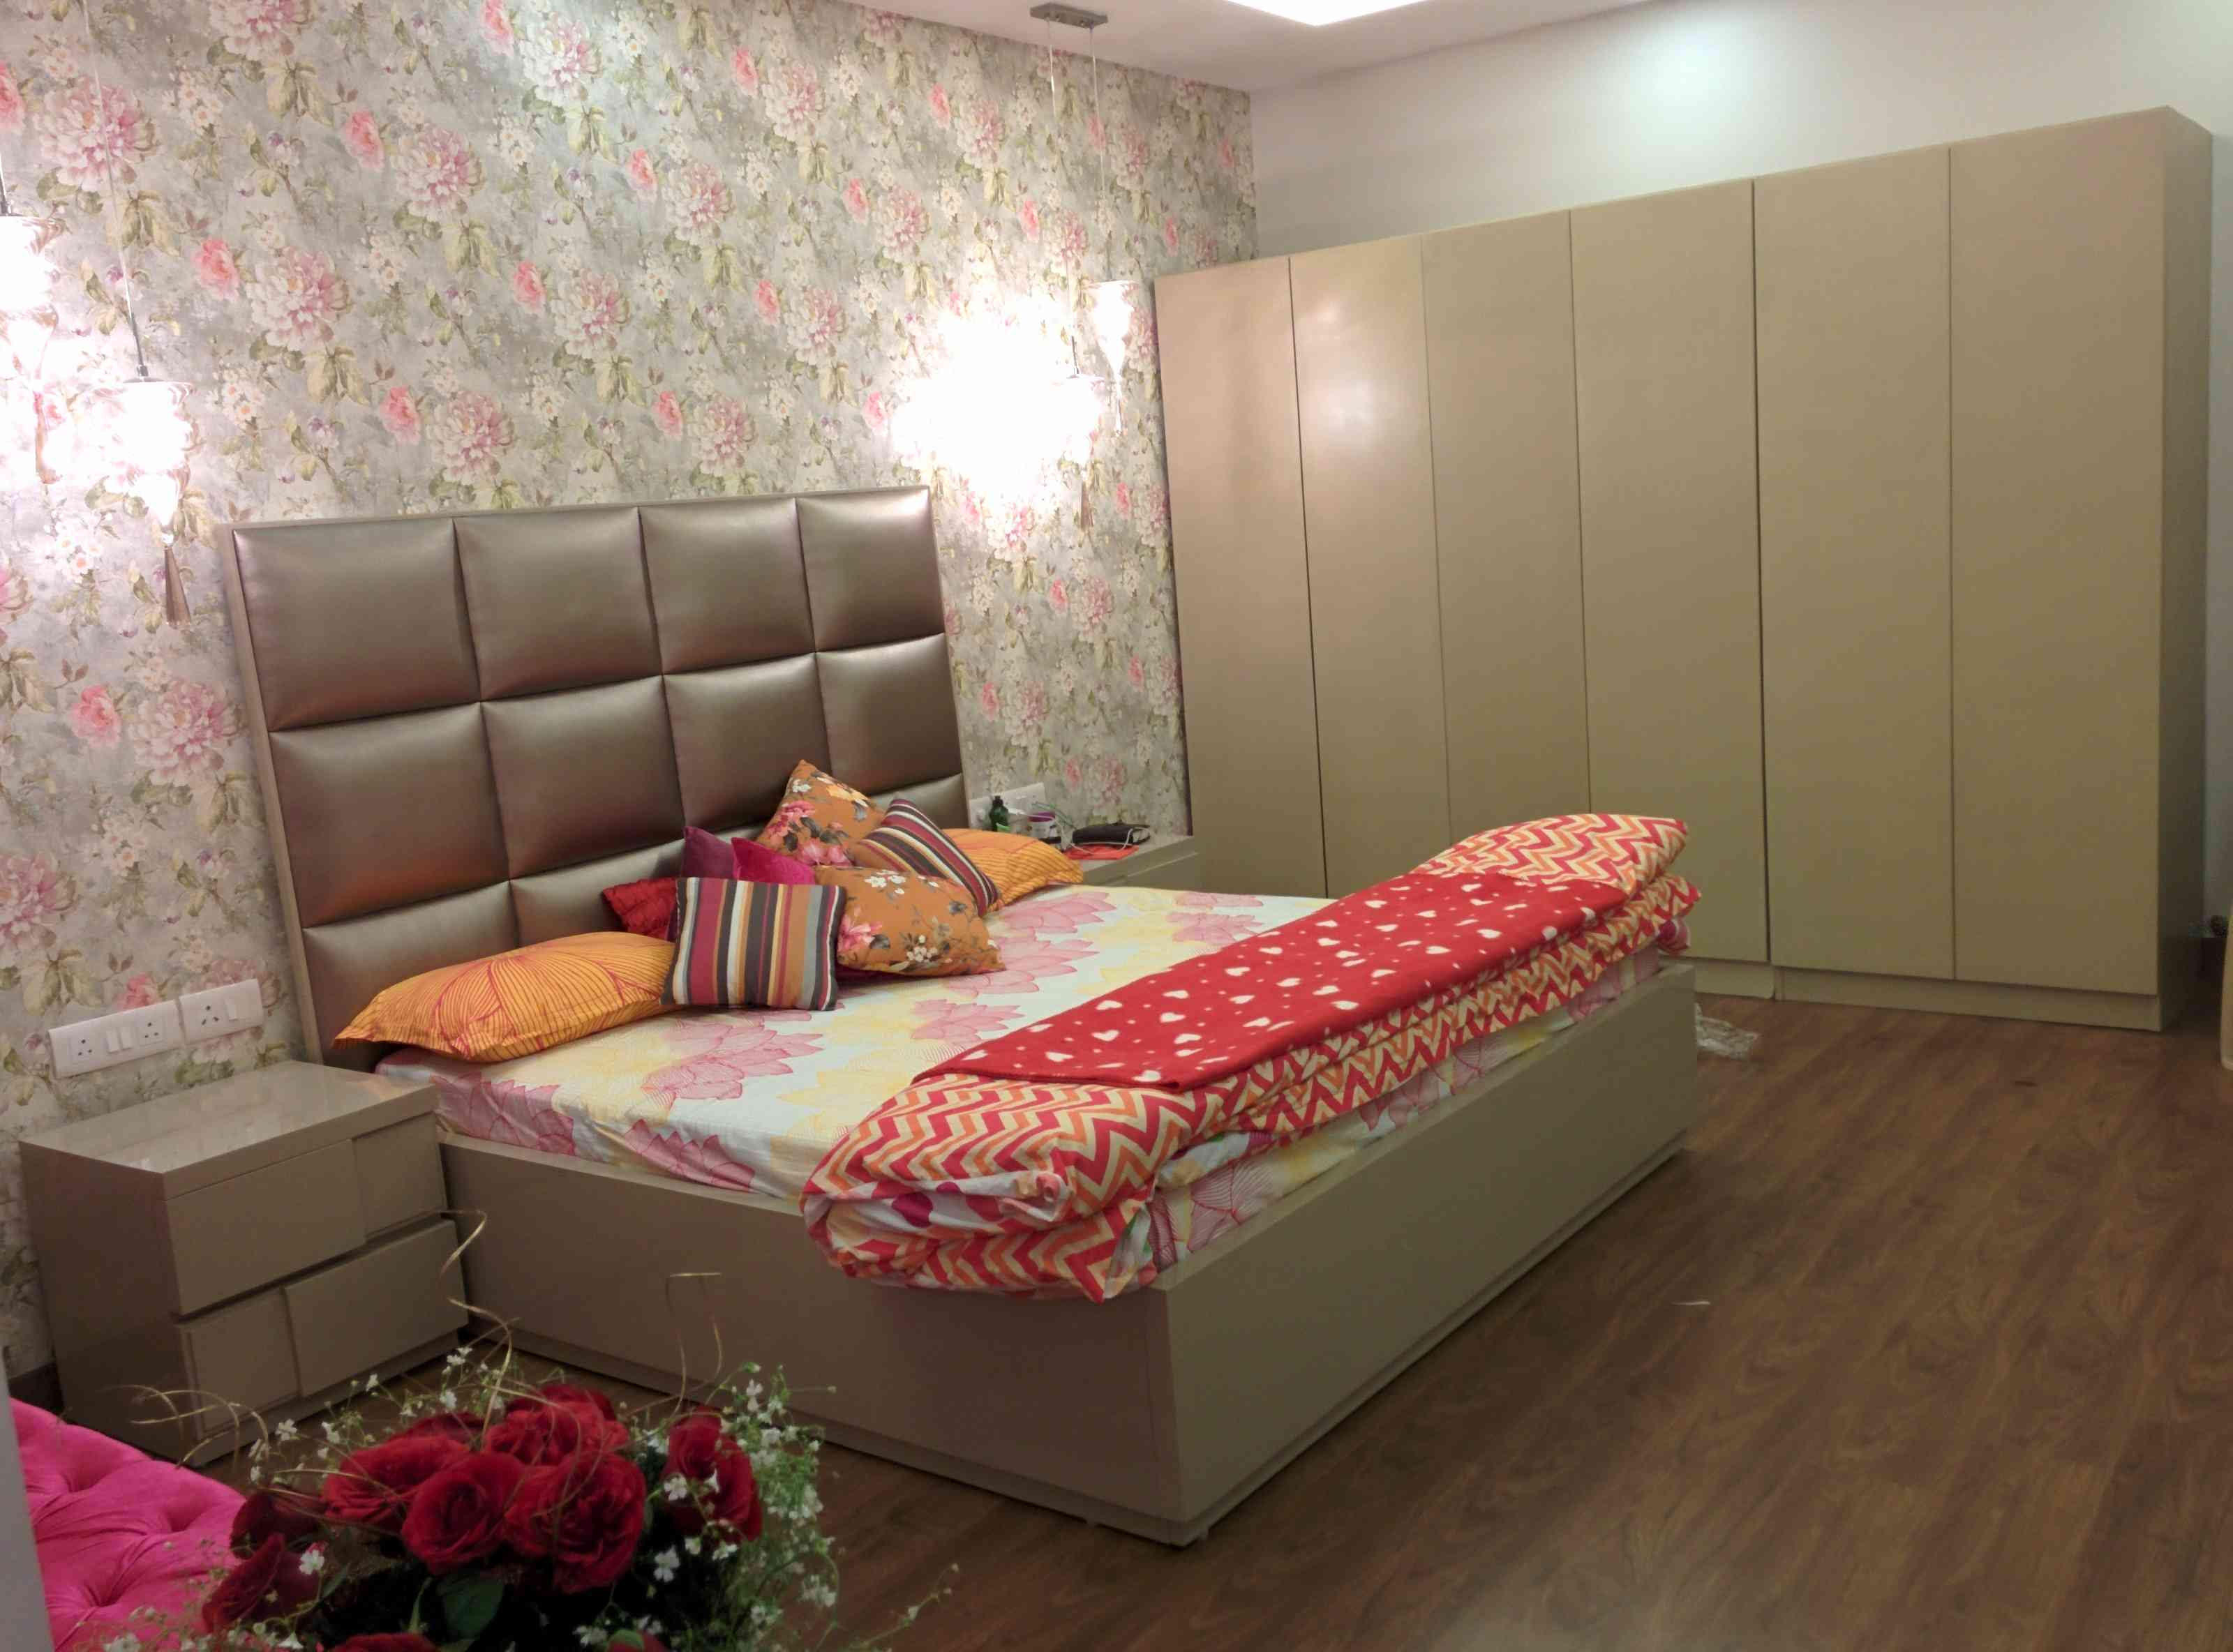 Indian Bed Designs, Indian Bed Design For Bedroom Ideas